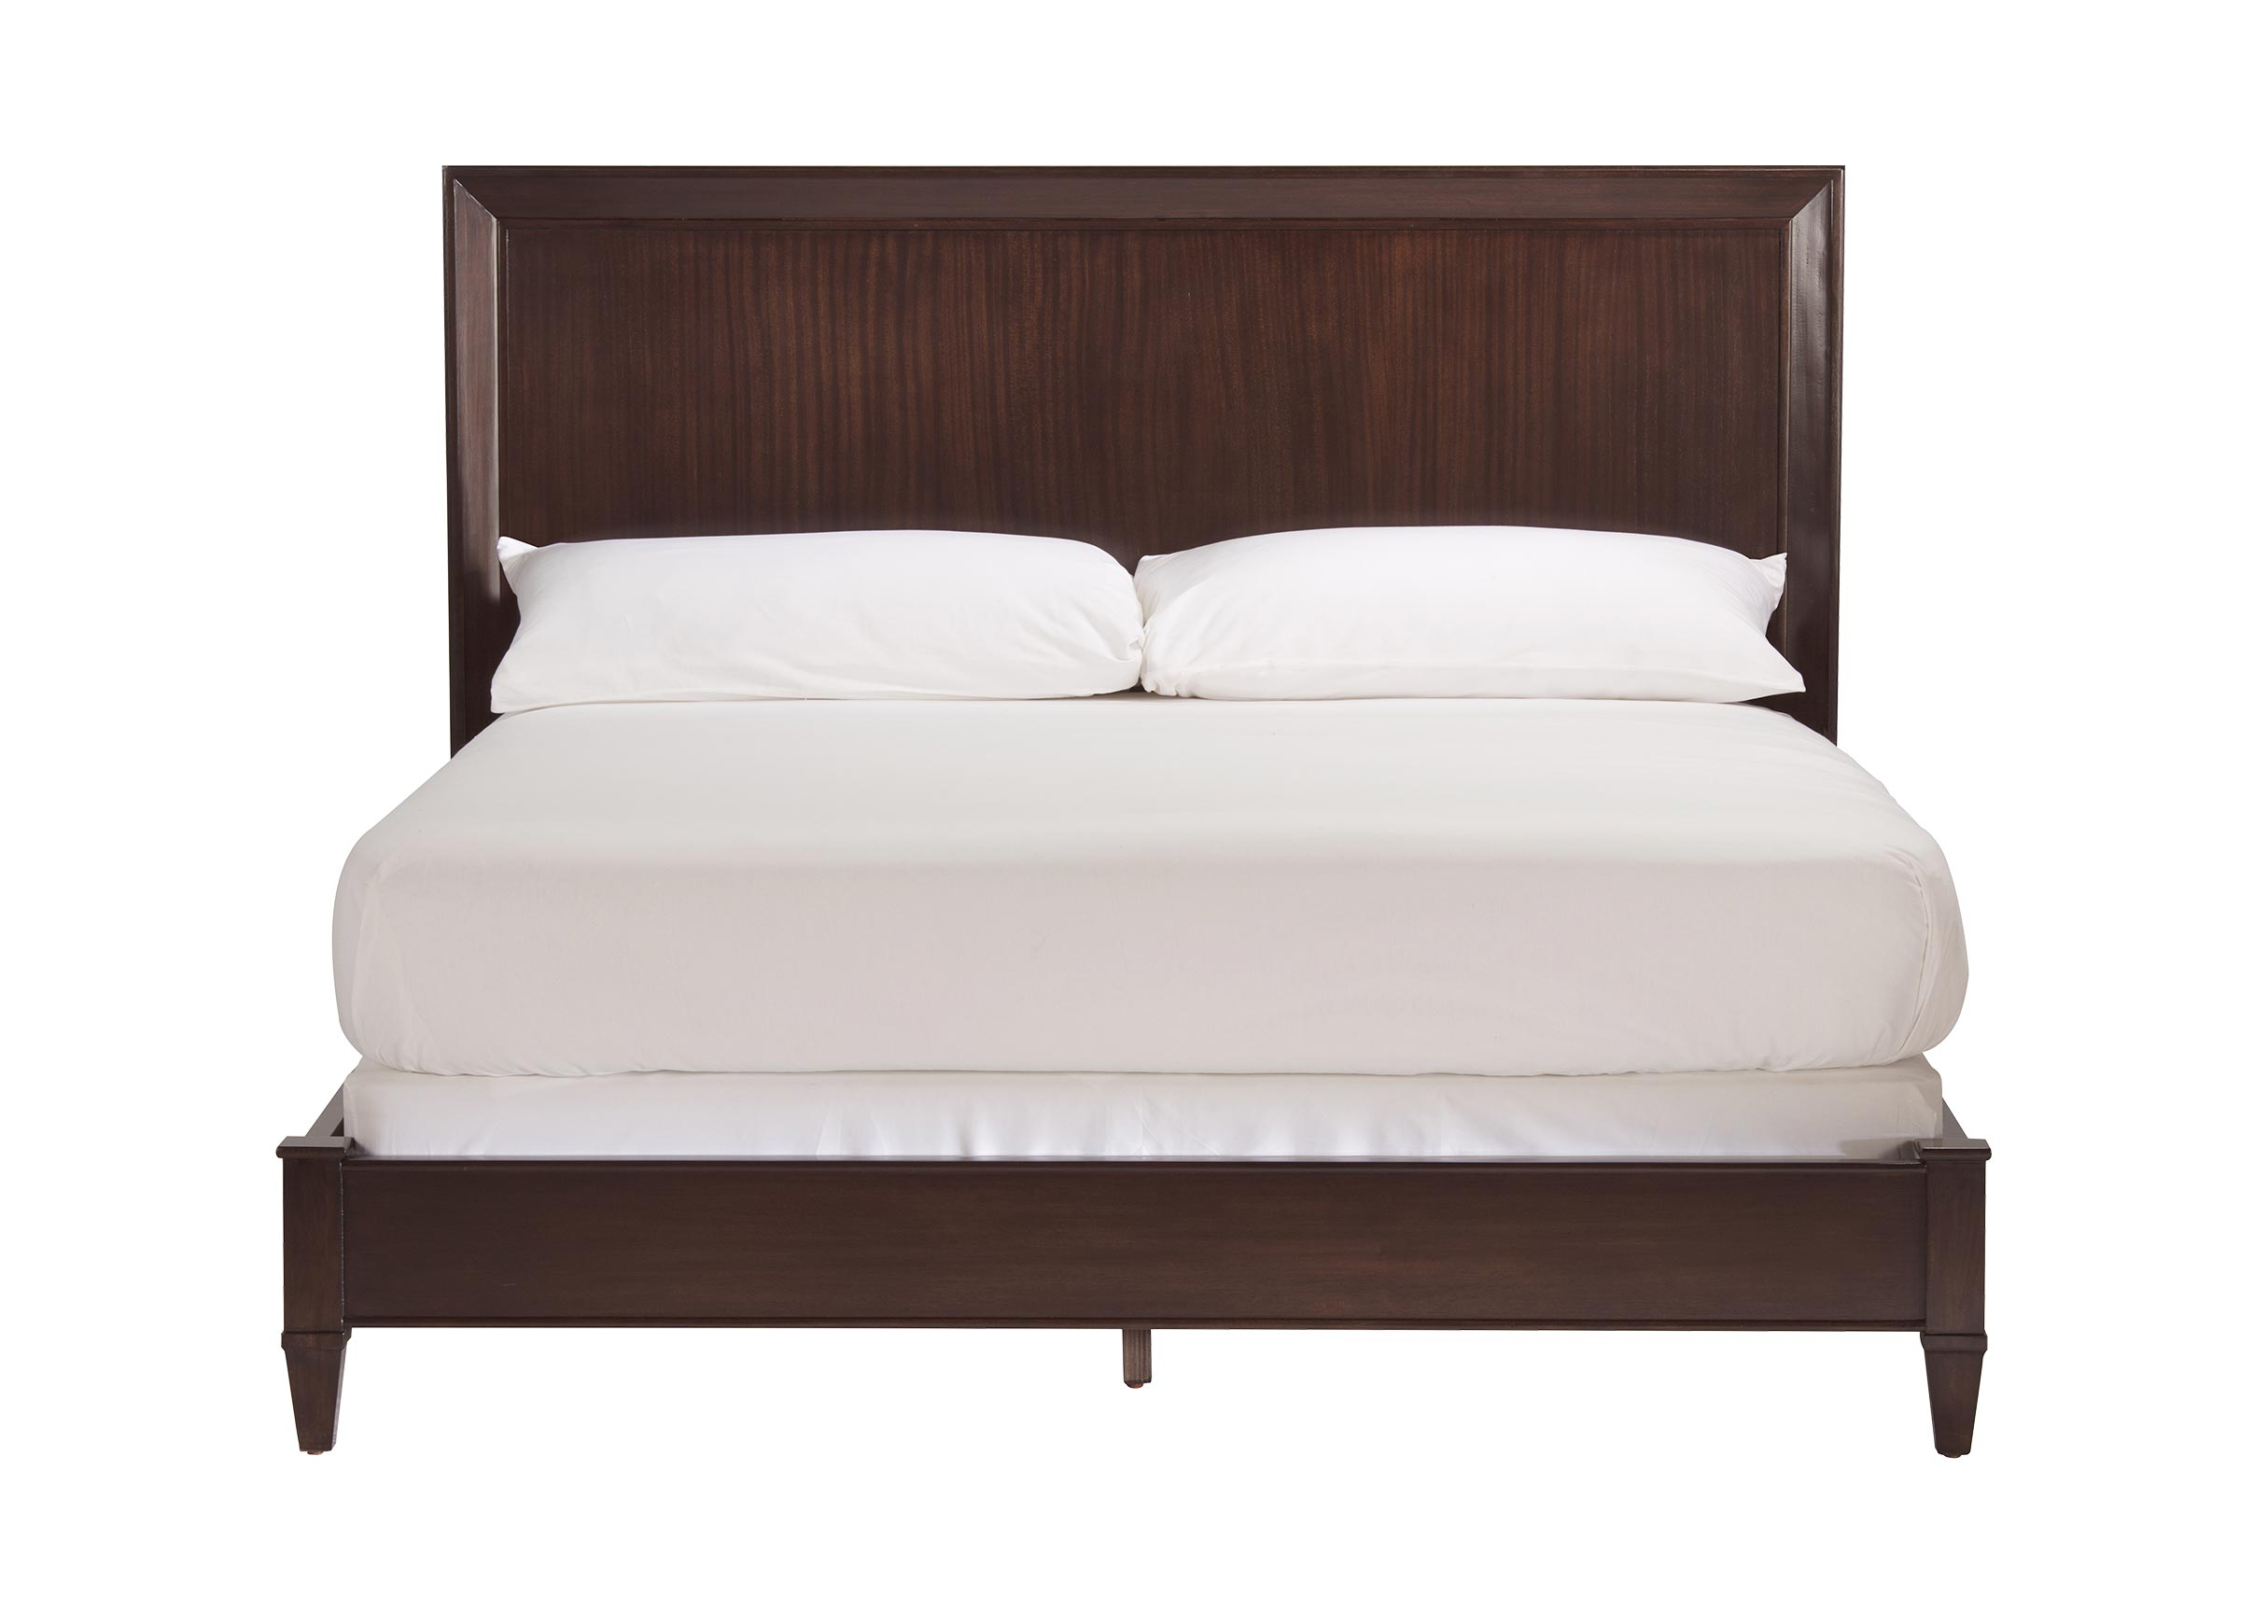 Andover Low Profile Bed Solid wood platform bed, Wood